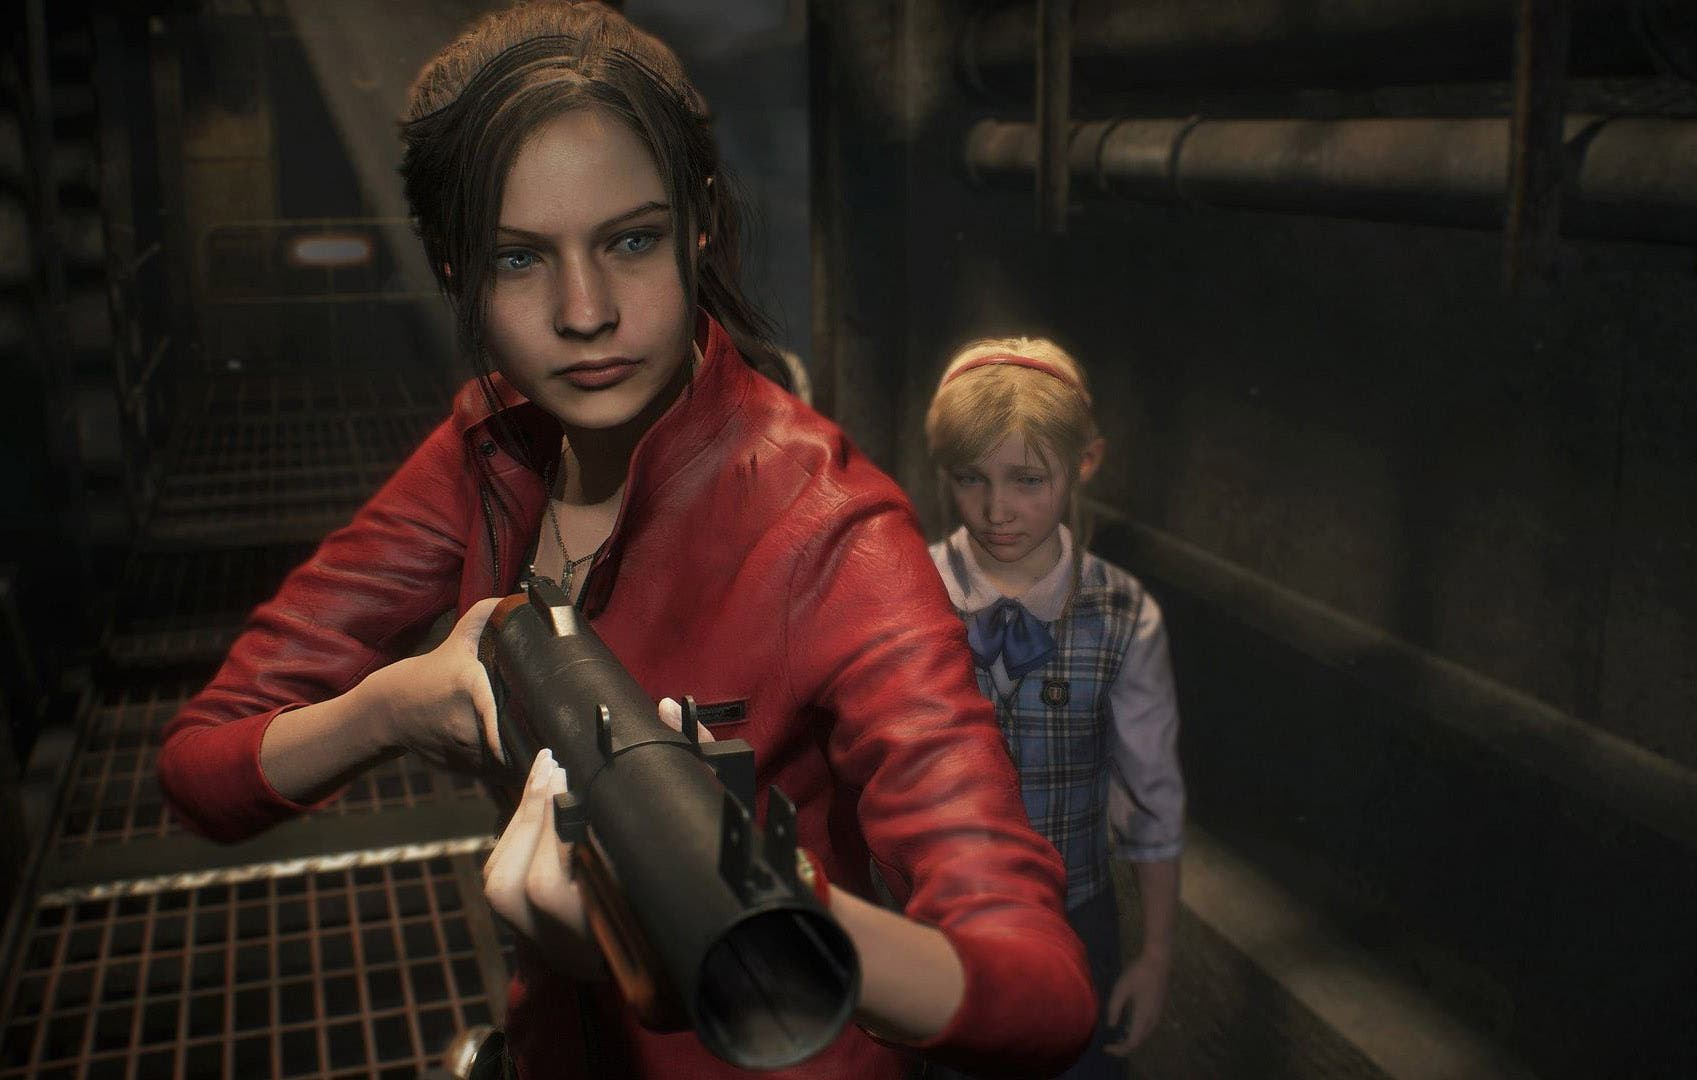 Claire Redfield de Resident Evil sería la nueva superviviente de Dead by Daylight 3